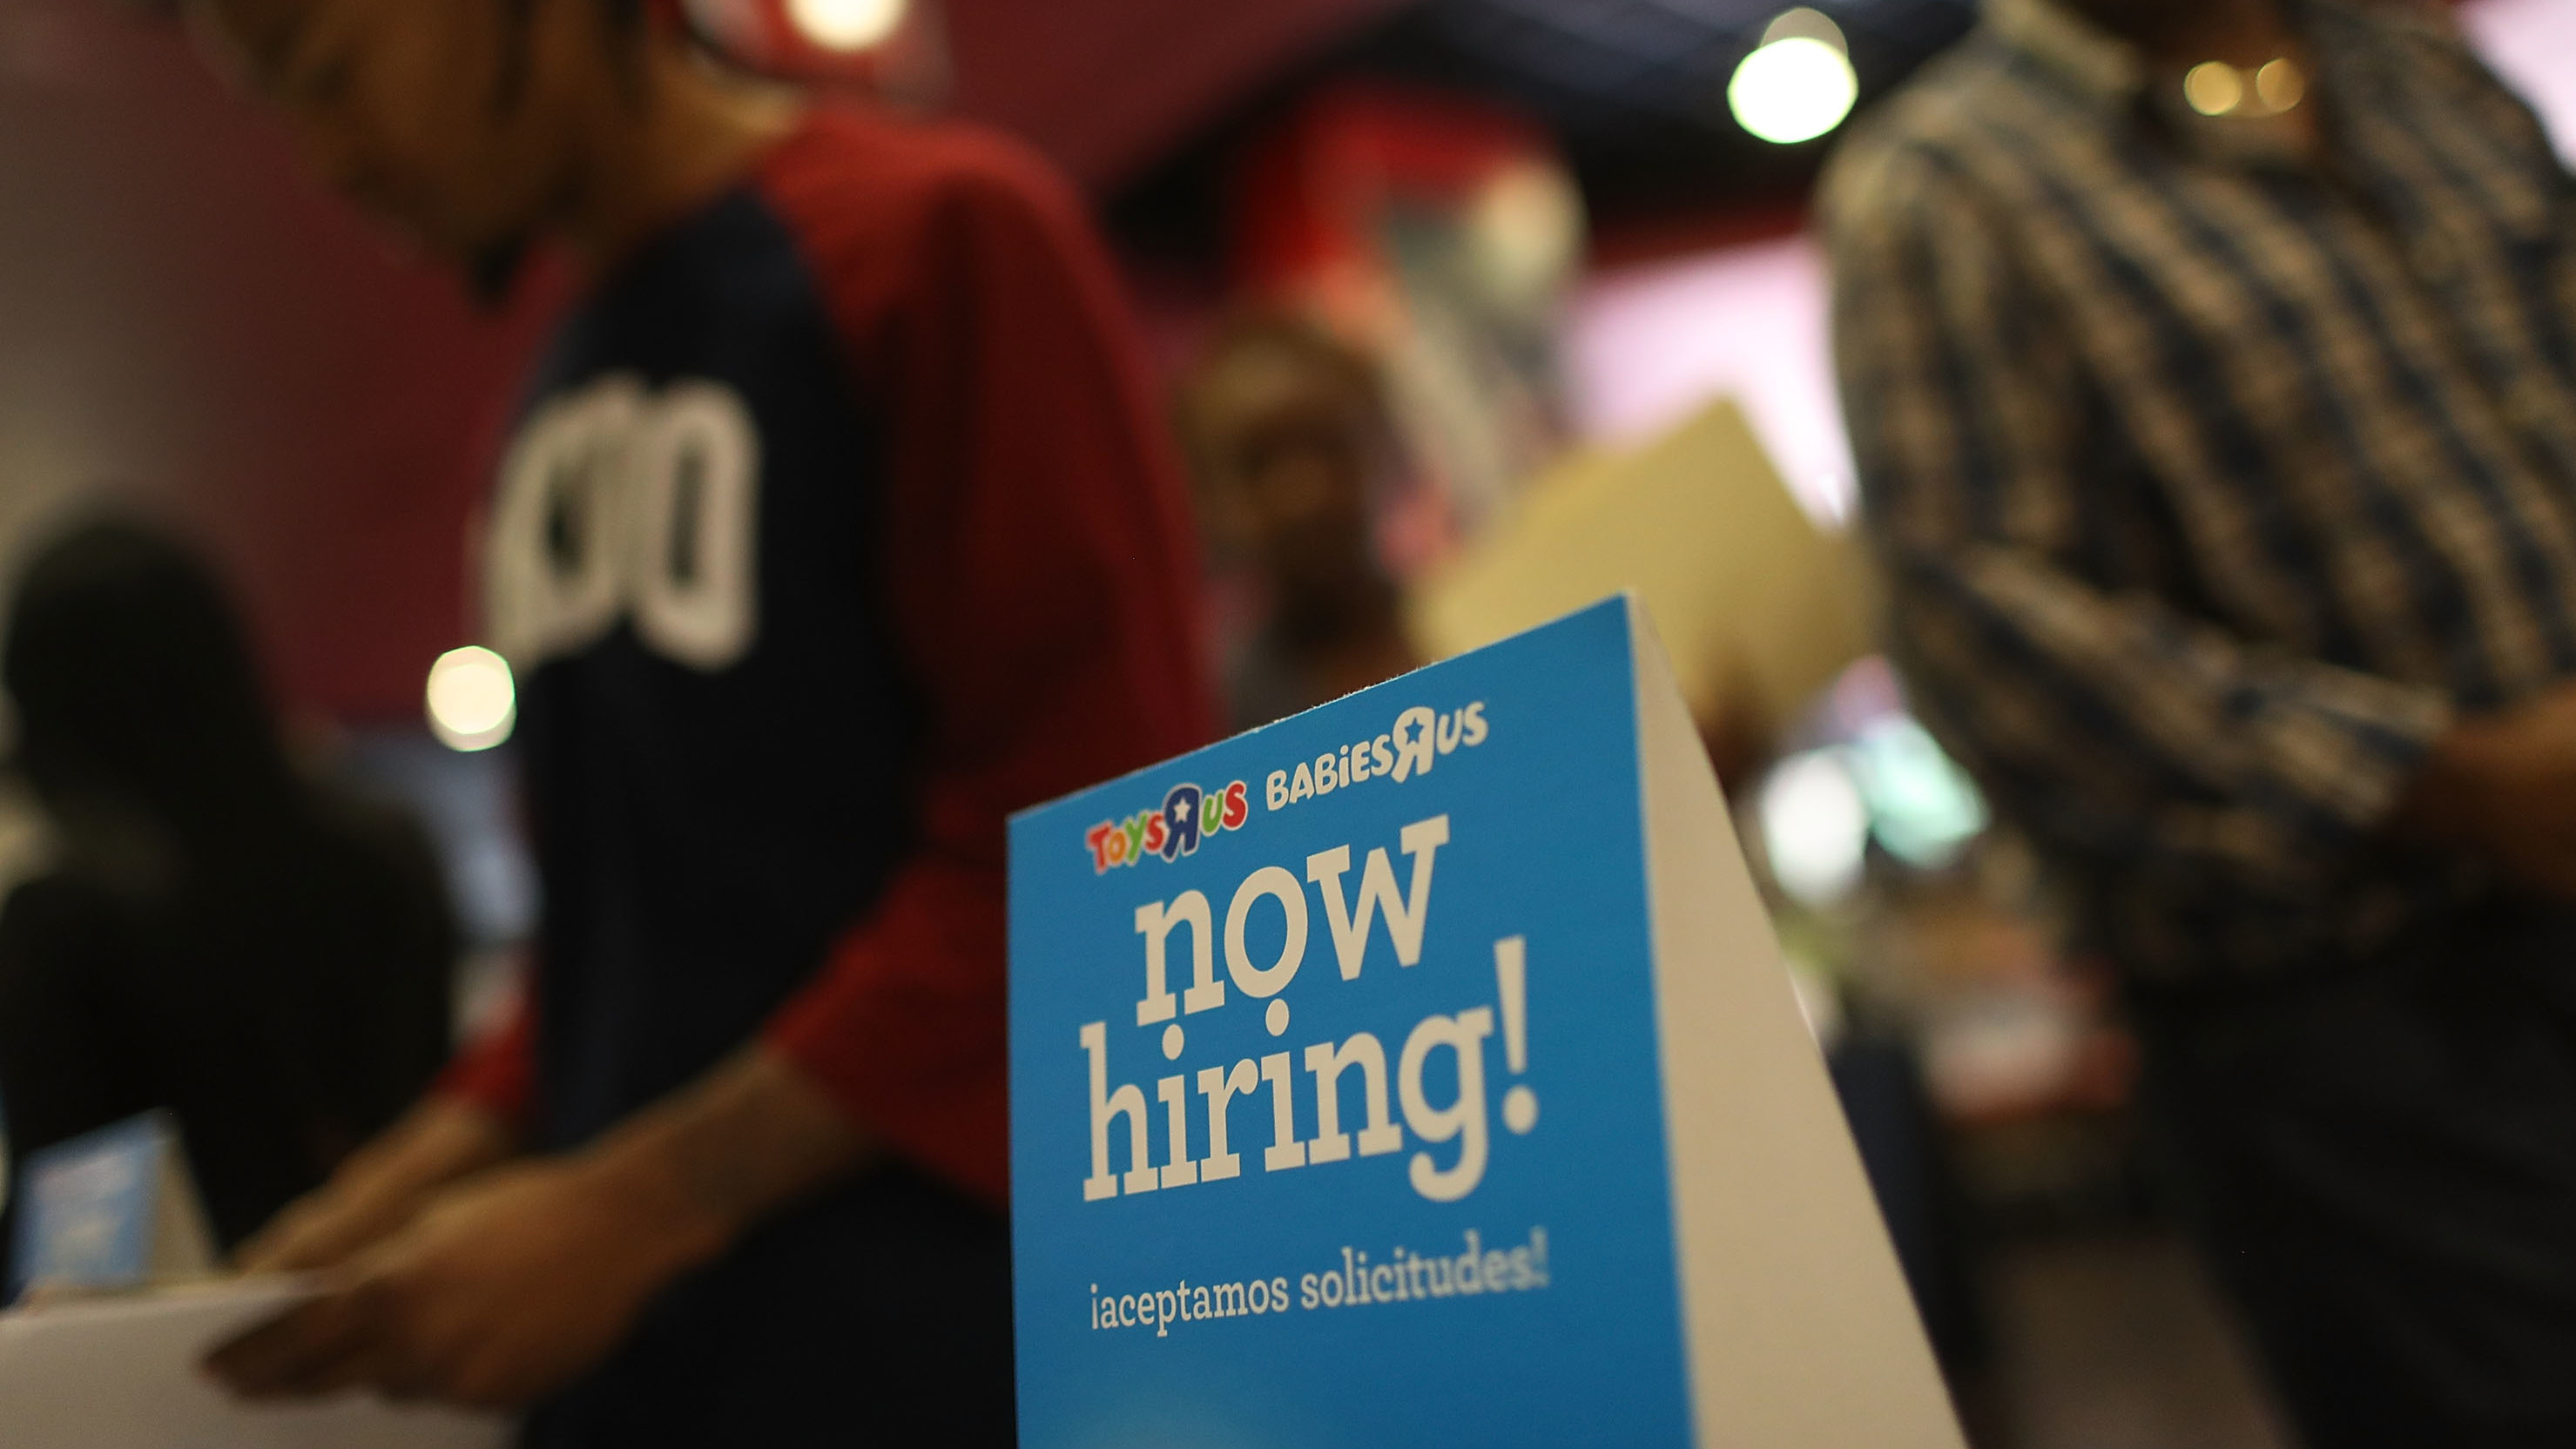 "A ""now hiring"" sign is seen at the Toys R Us booth during the JobNewsUSA job fair Nov. 15 at the BB&T Center in Sunrise, Fla."